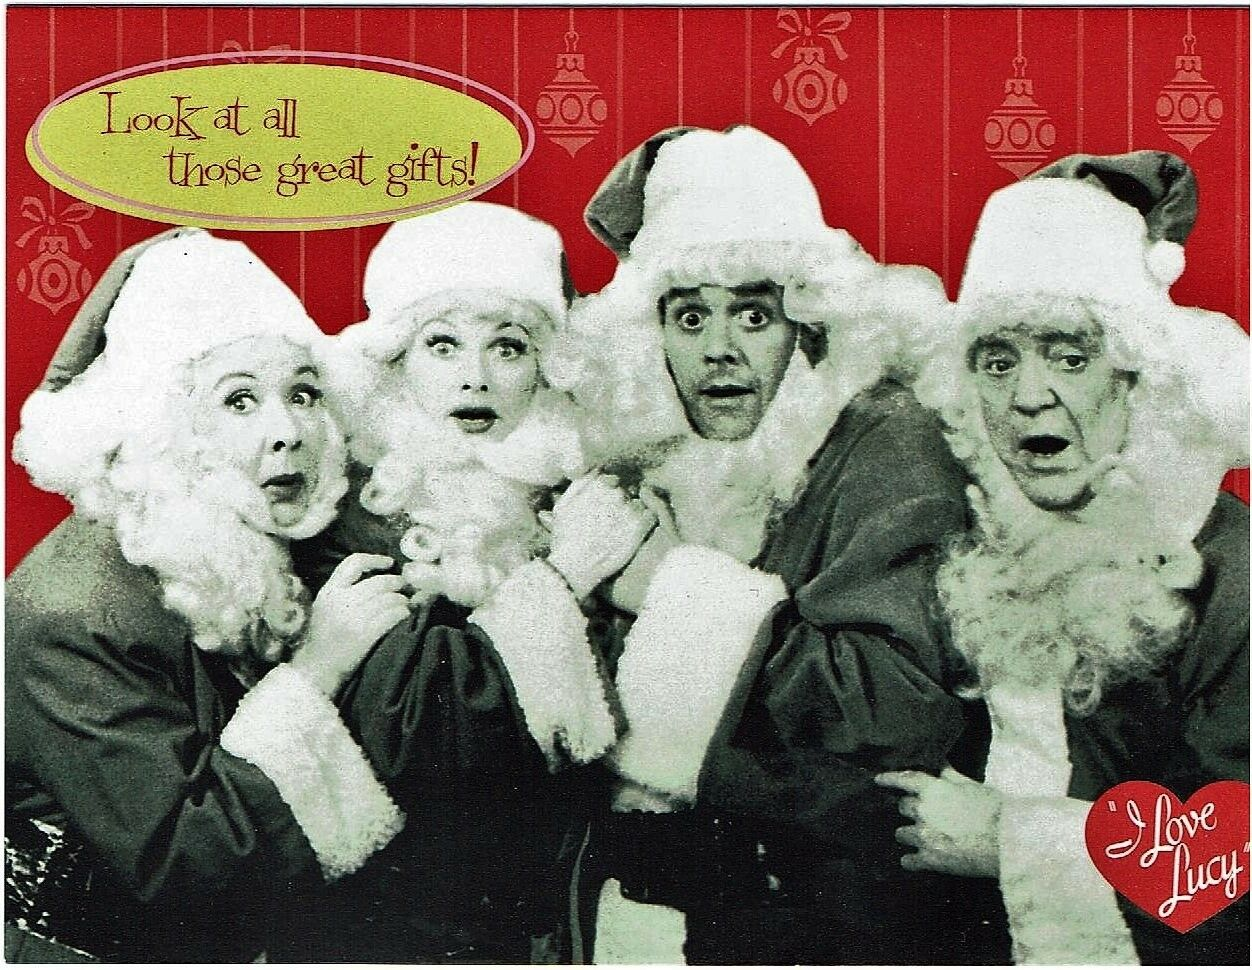 LUCILLE BALL DESI Arnaz I LOVE LUCY CAST CHRISTMAS CARD - NEW with ...